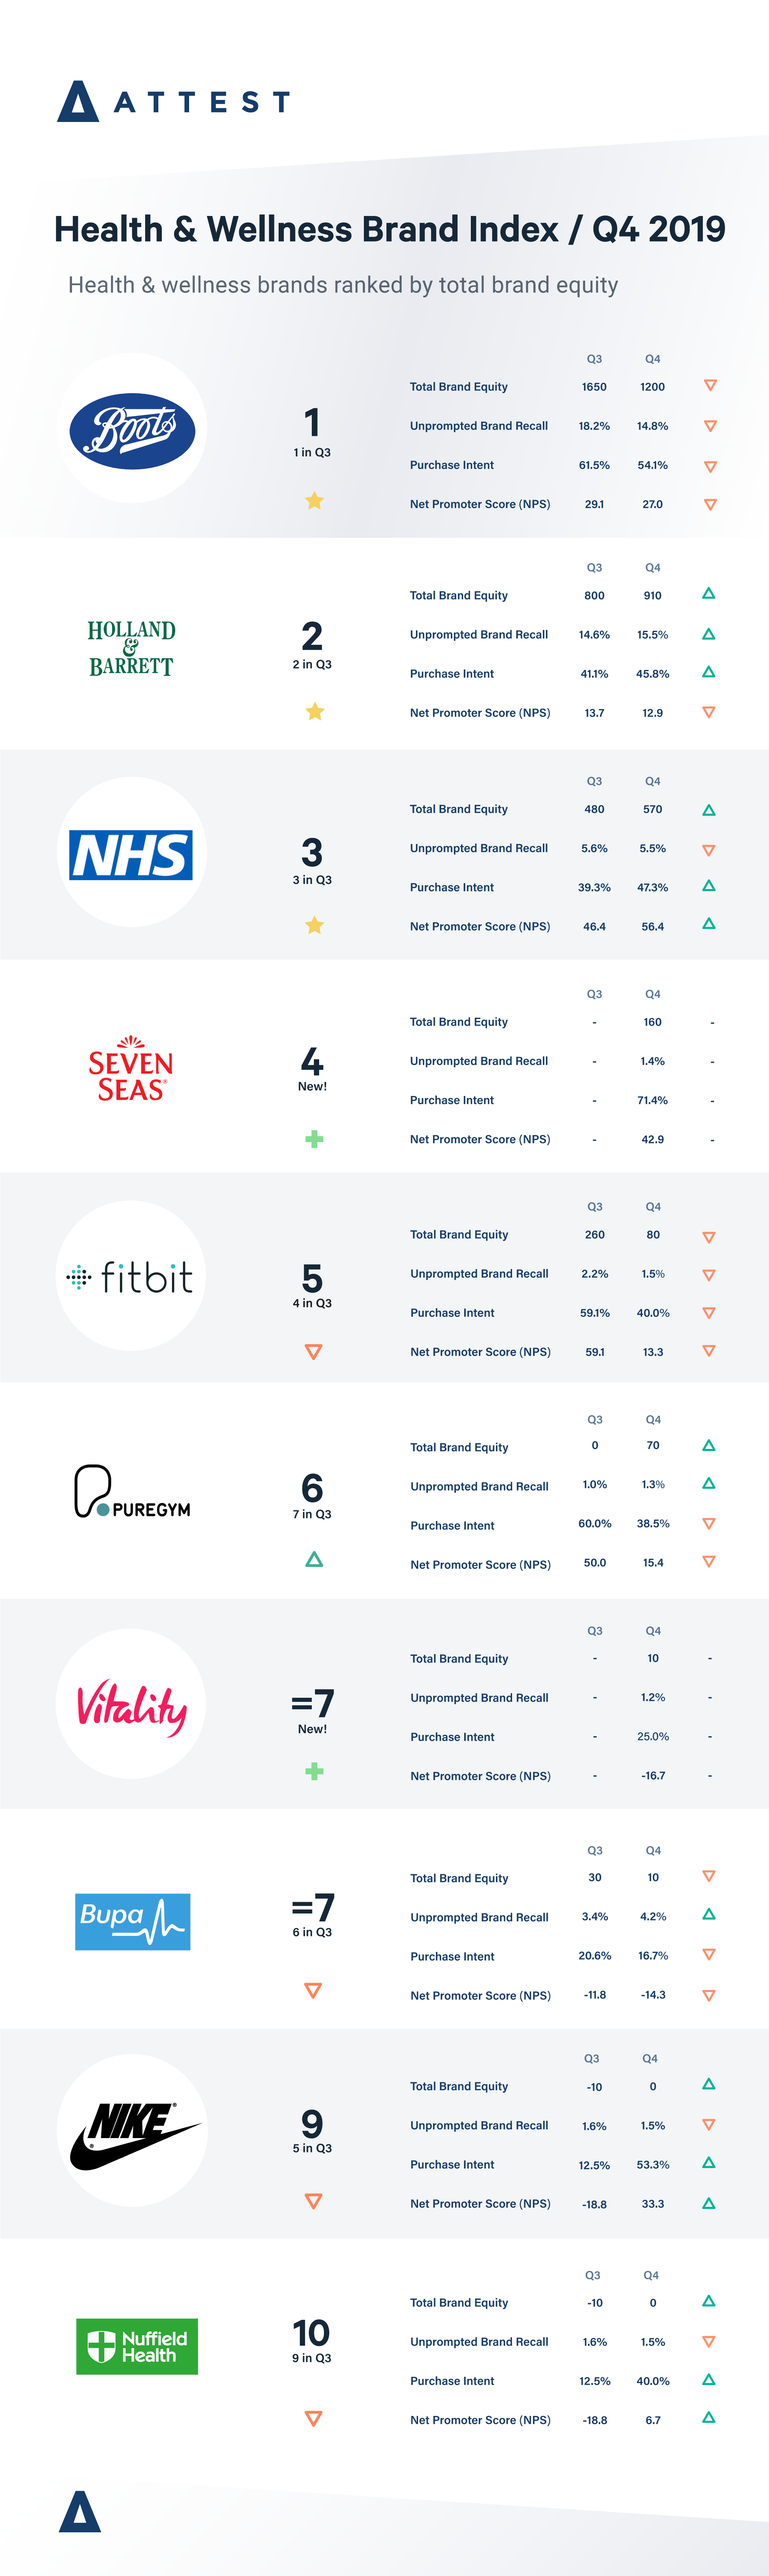 health and wellness brand index 2019 Q4